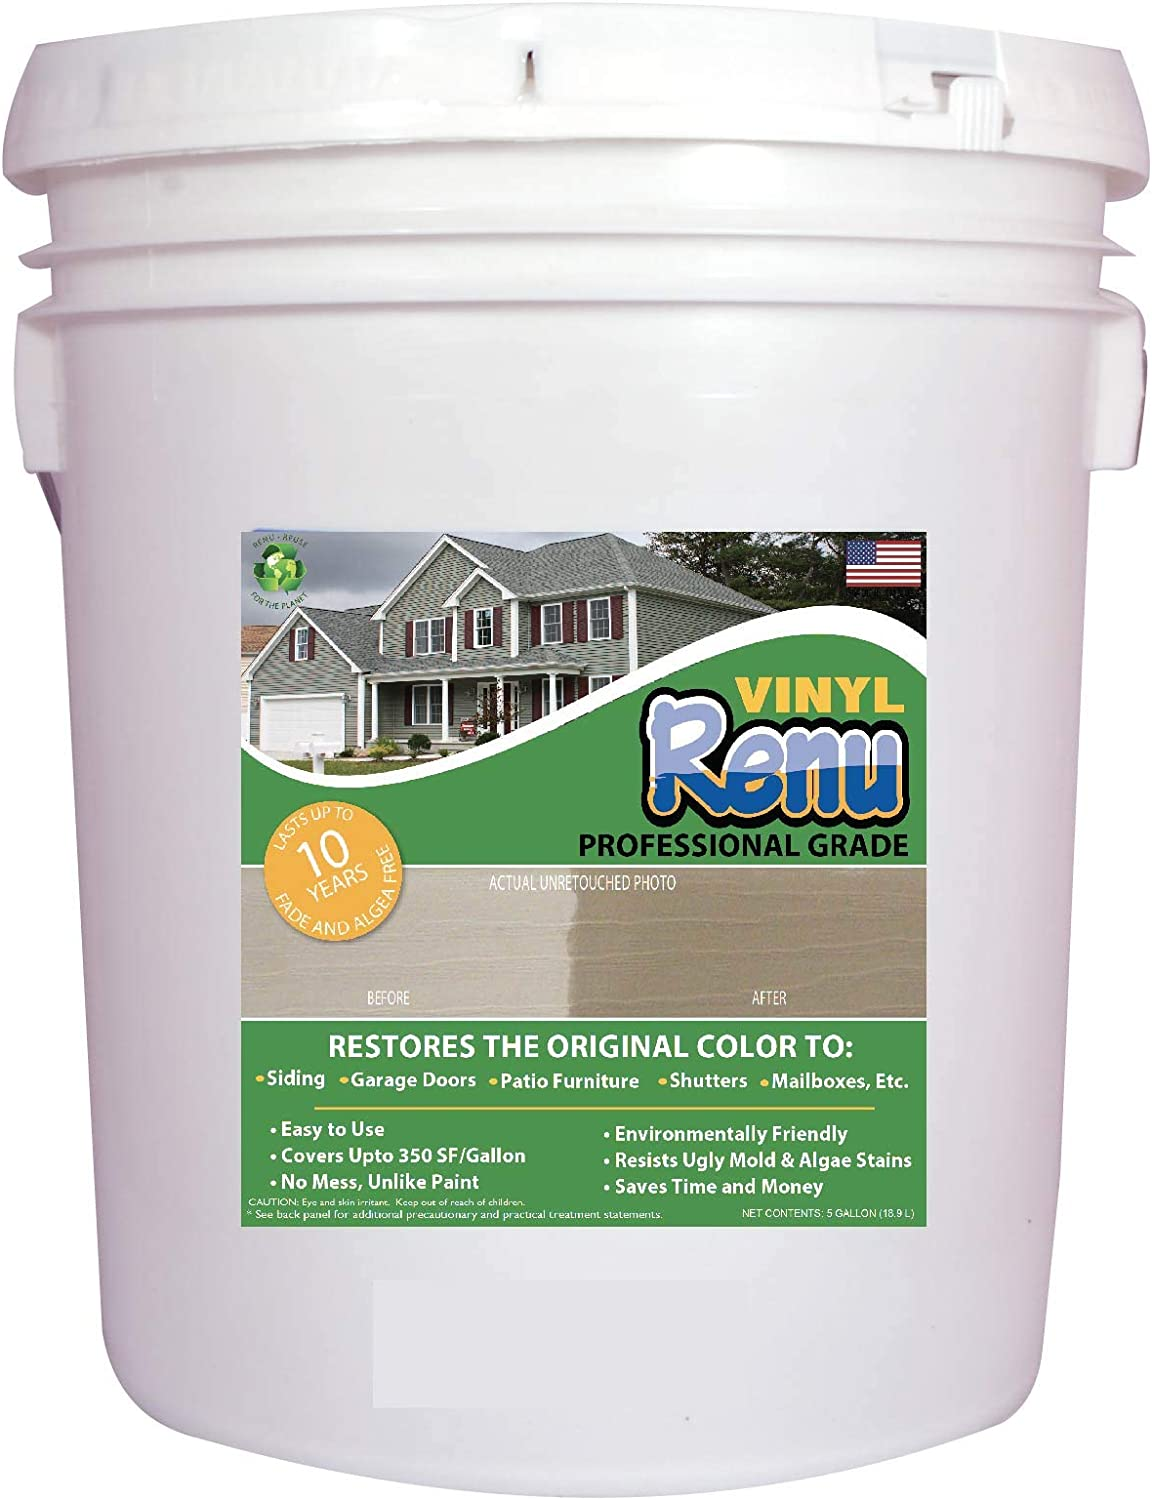 Vinyl Renu PRO 5 Gallon-Vinyl Siding & Multi Surface Restorer-Restores Color & Protects Faded Vinyl, Metal, Cement Board & Stucco Siding. 10 Year Warranty Included. Easy To Apply With No Mess